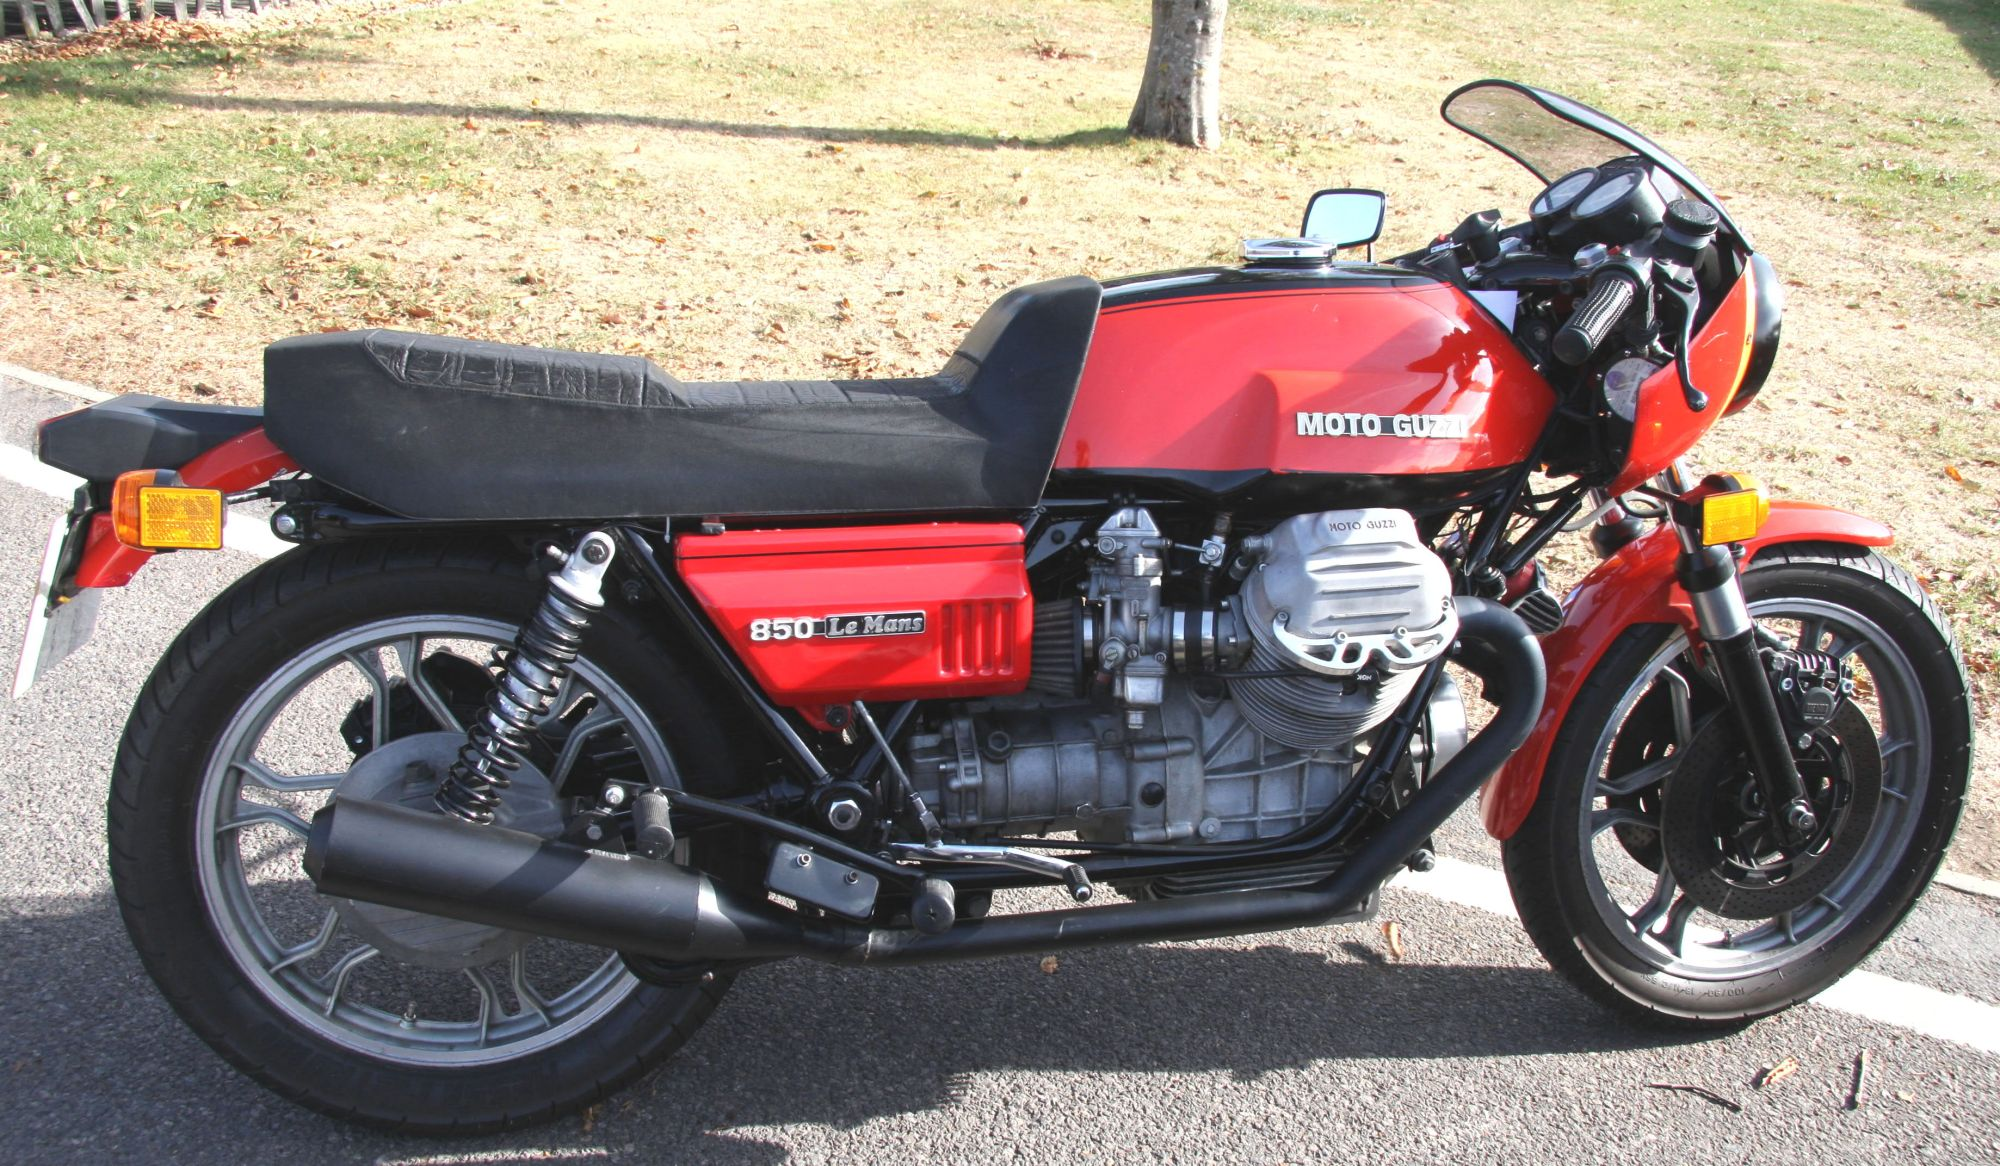 hight resolution of guzzi invented the italian cafe racer genre in the 70s they stick to the retro themes but then they make a lame tribute to british cafe racers